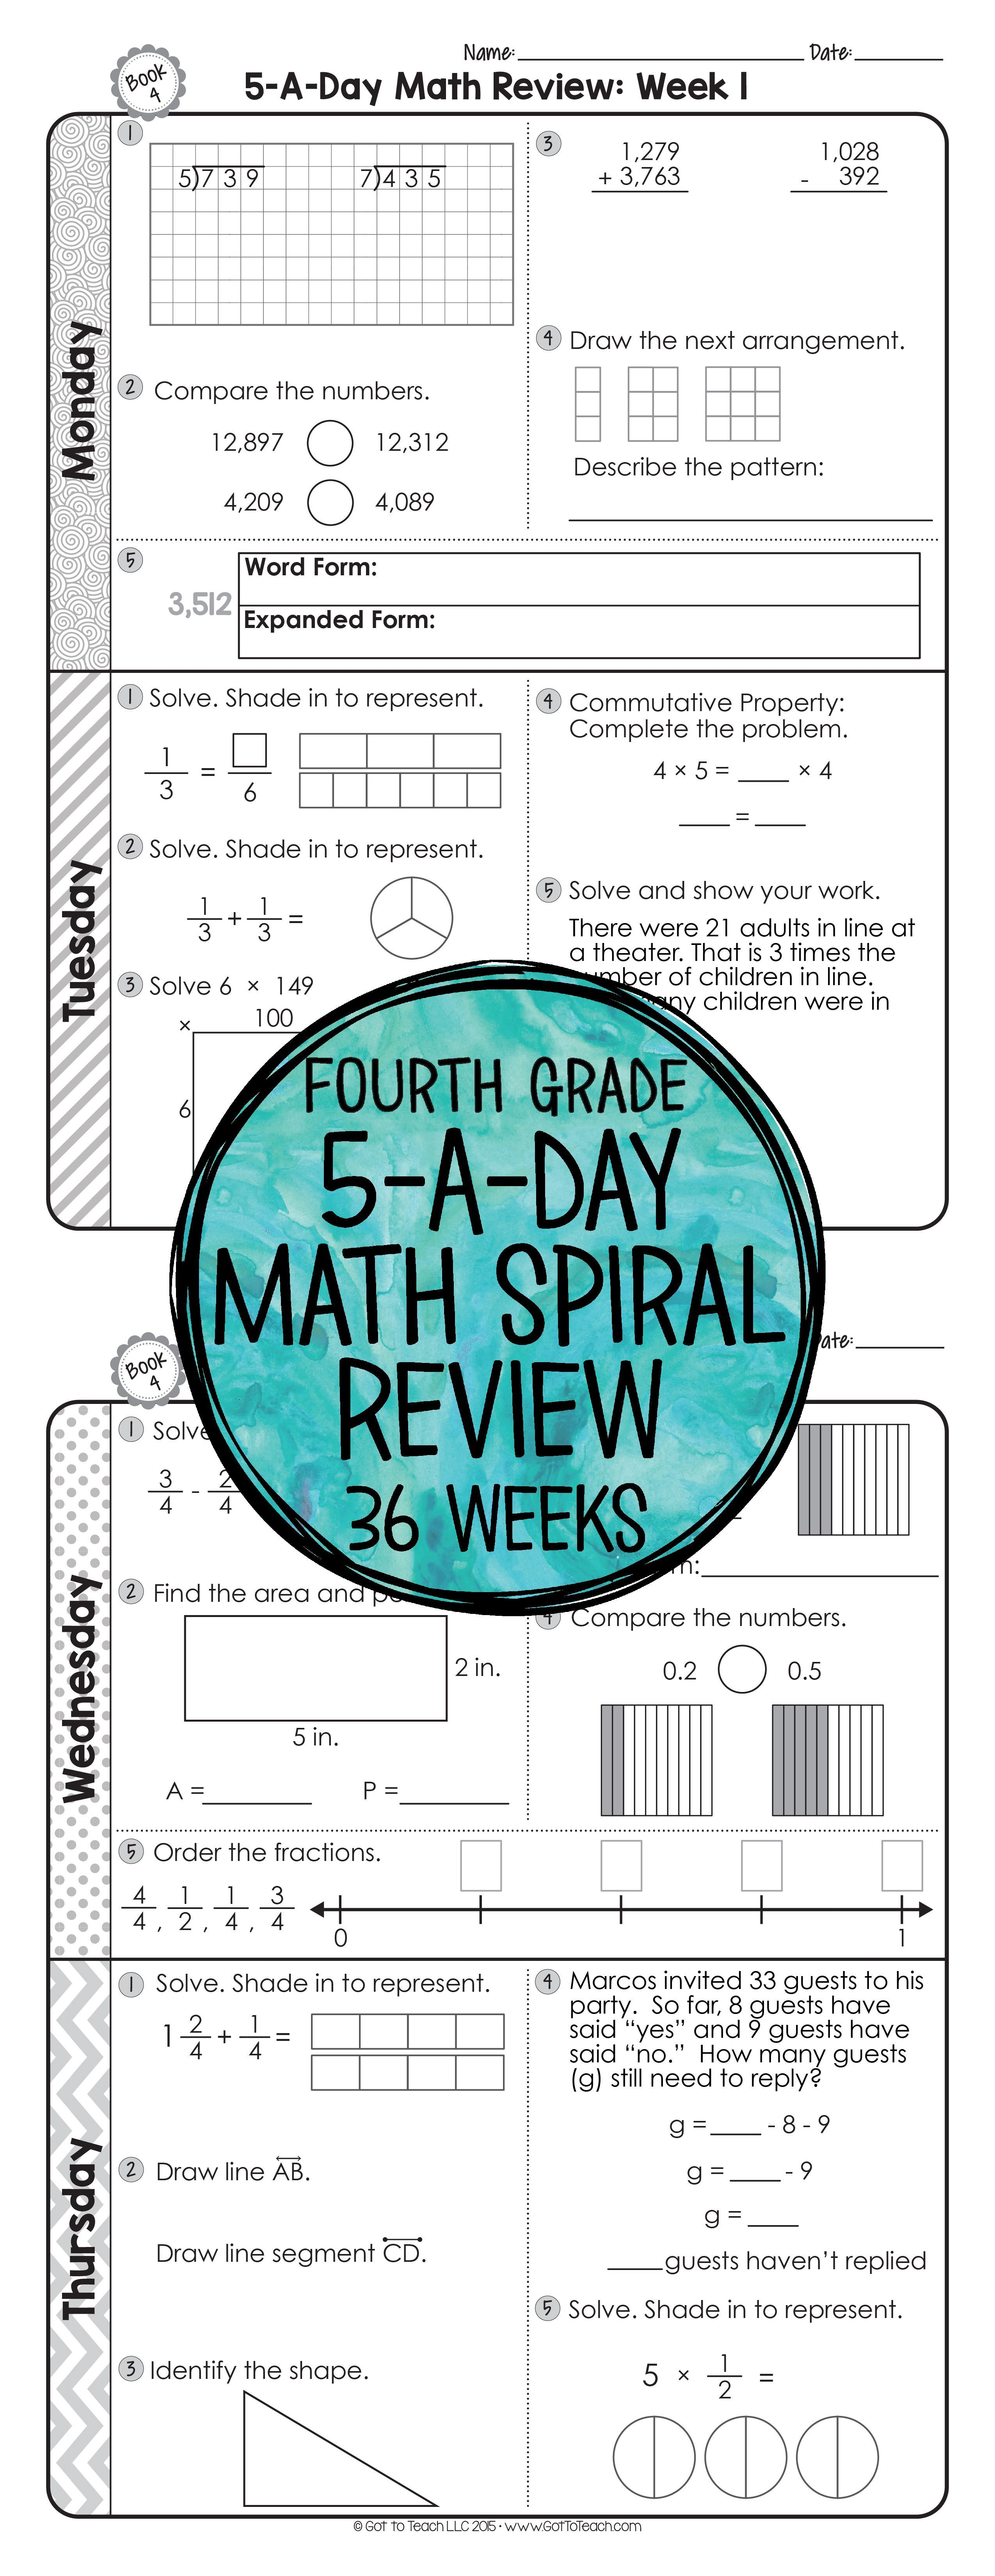 small resolution of Spiral Math Worksheet   Printable Worksheets and Activities for Teachers